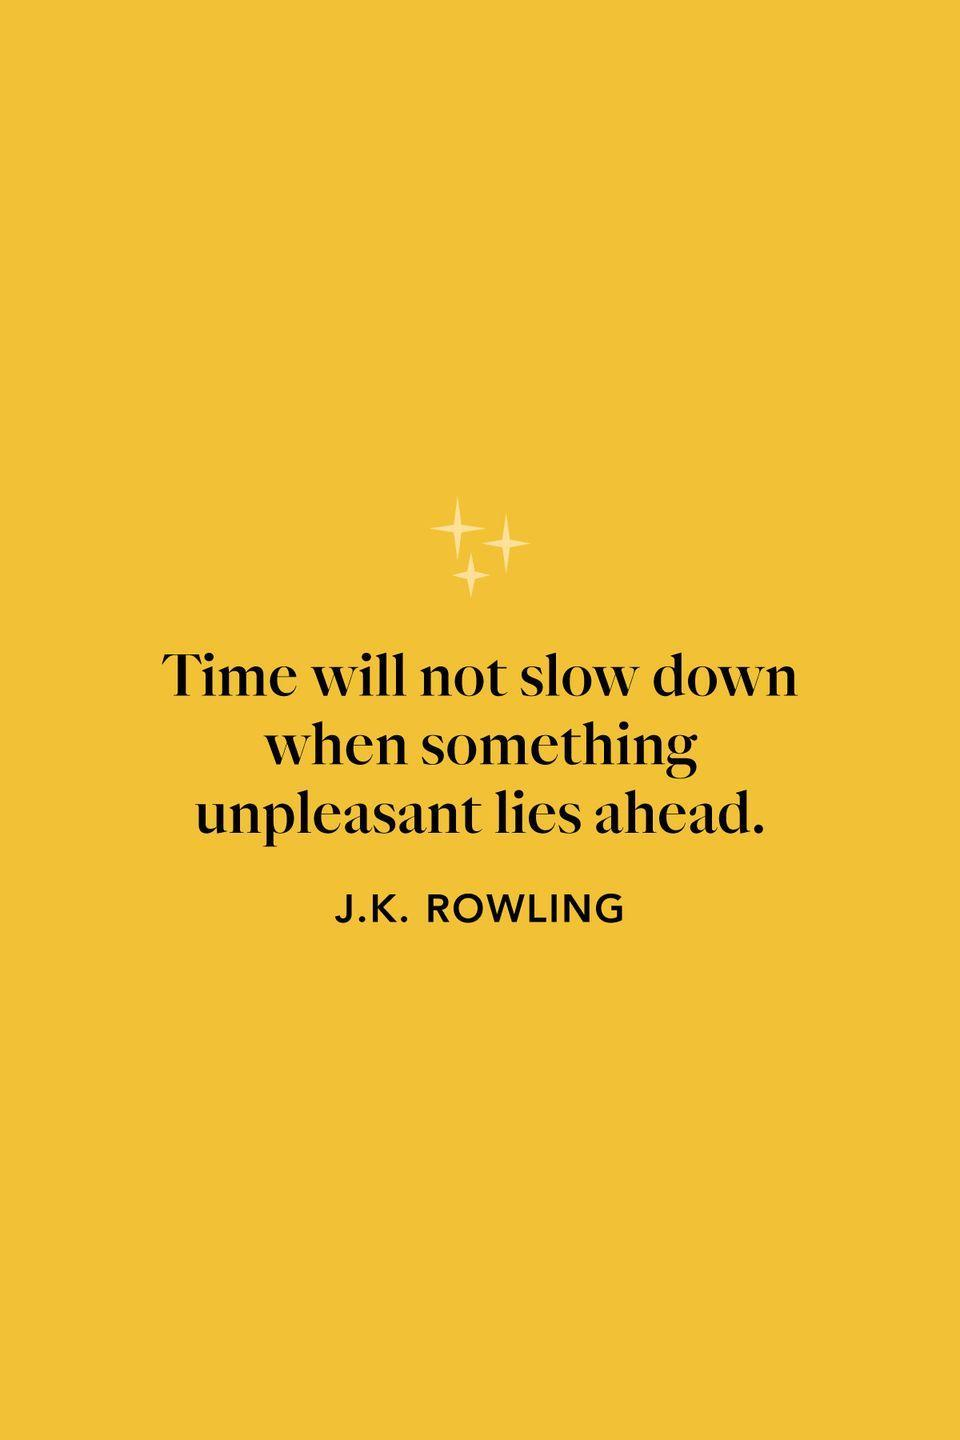 """<p>In <em>The Goblet of Fire</em>, Rowling writes """"Time will not slow down when something unpleasant lies ahead,"""" as the narrator.</p>"""